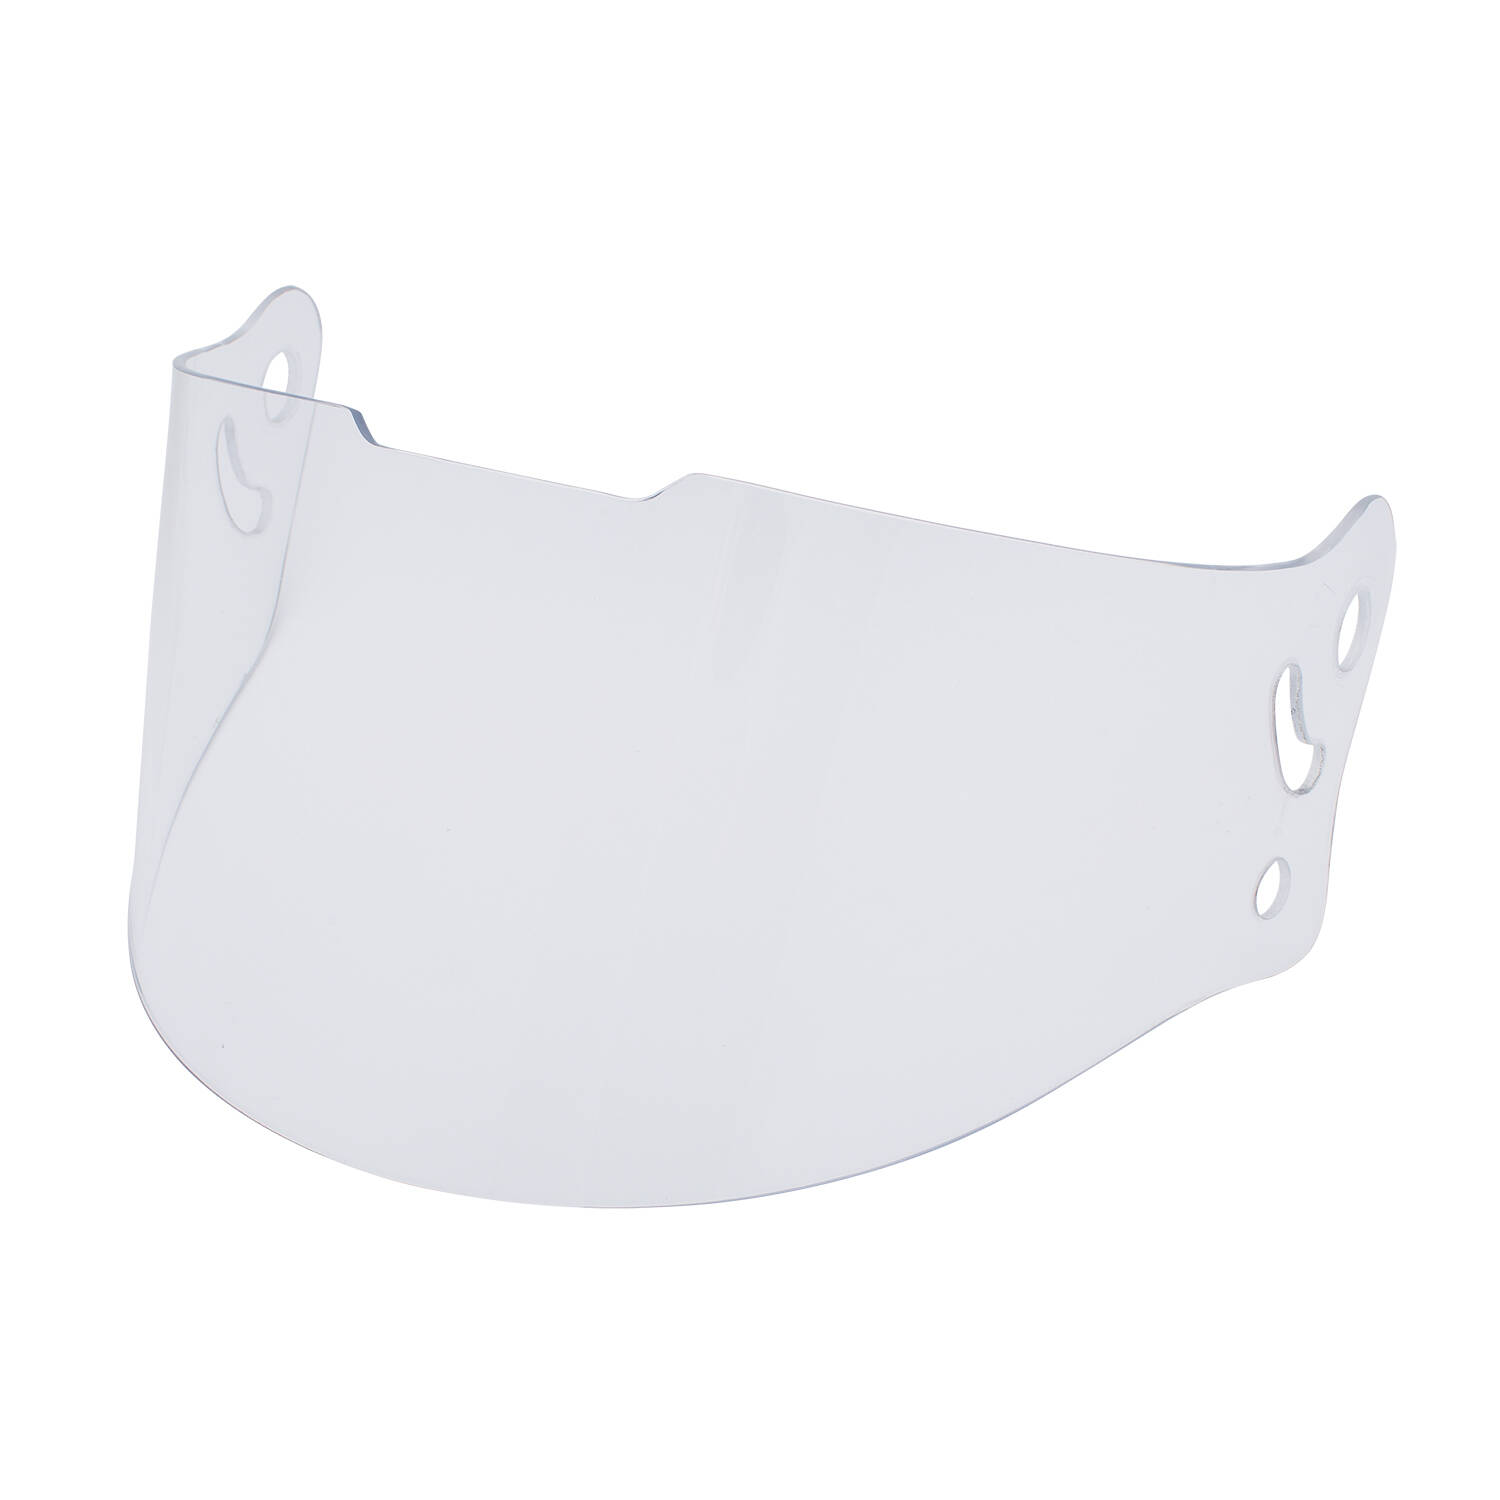 Full Face Retro Helmet Visor, Clear